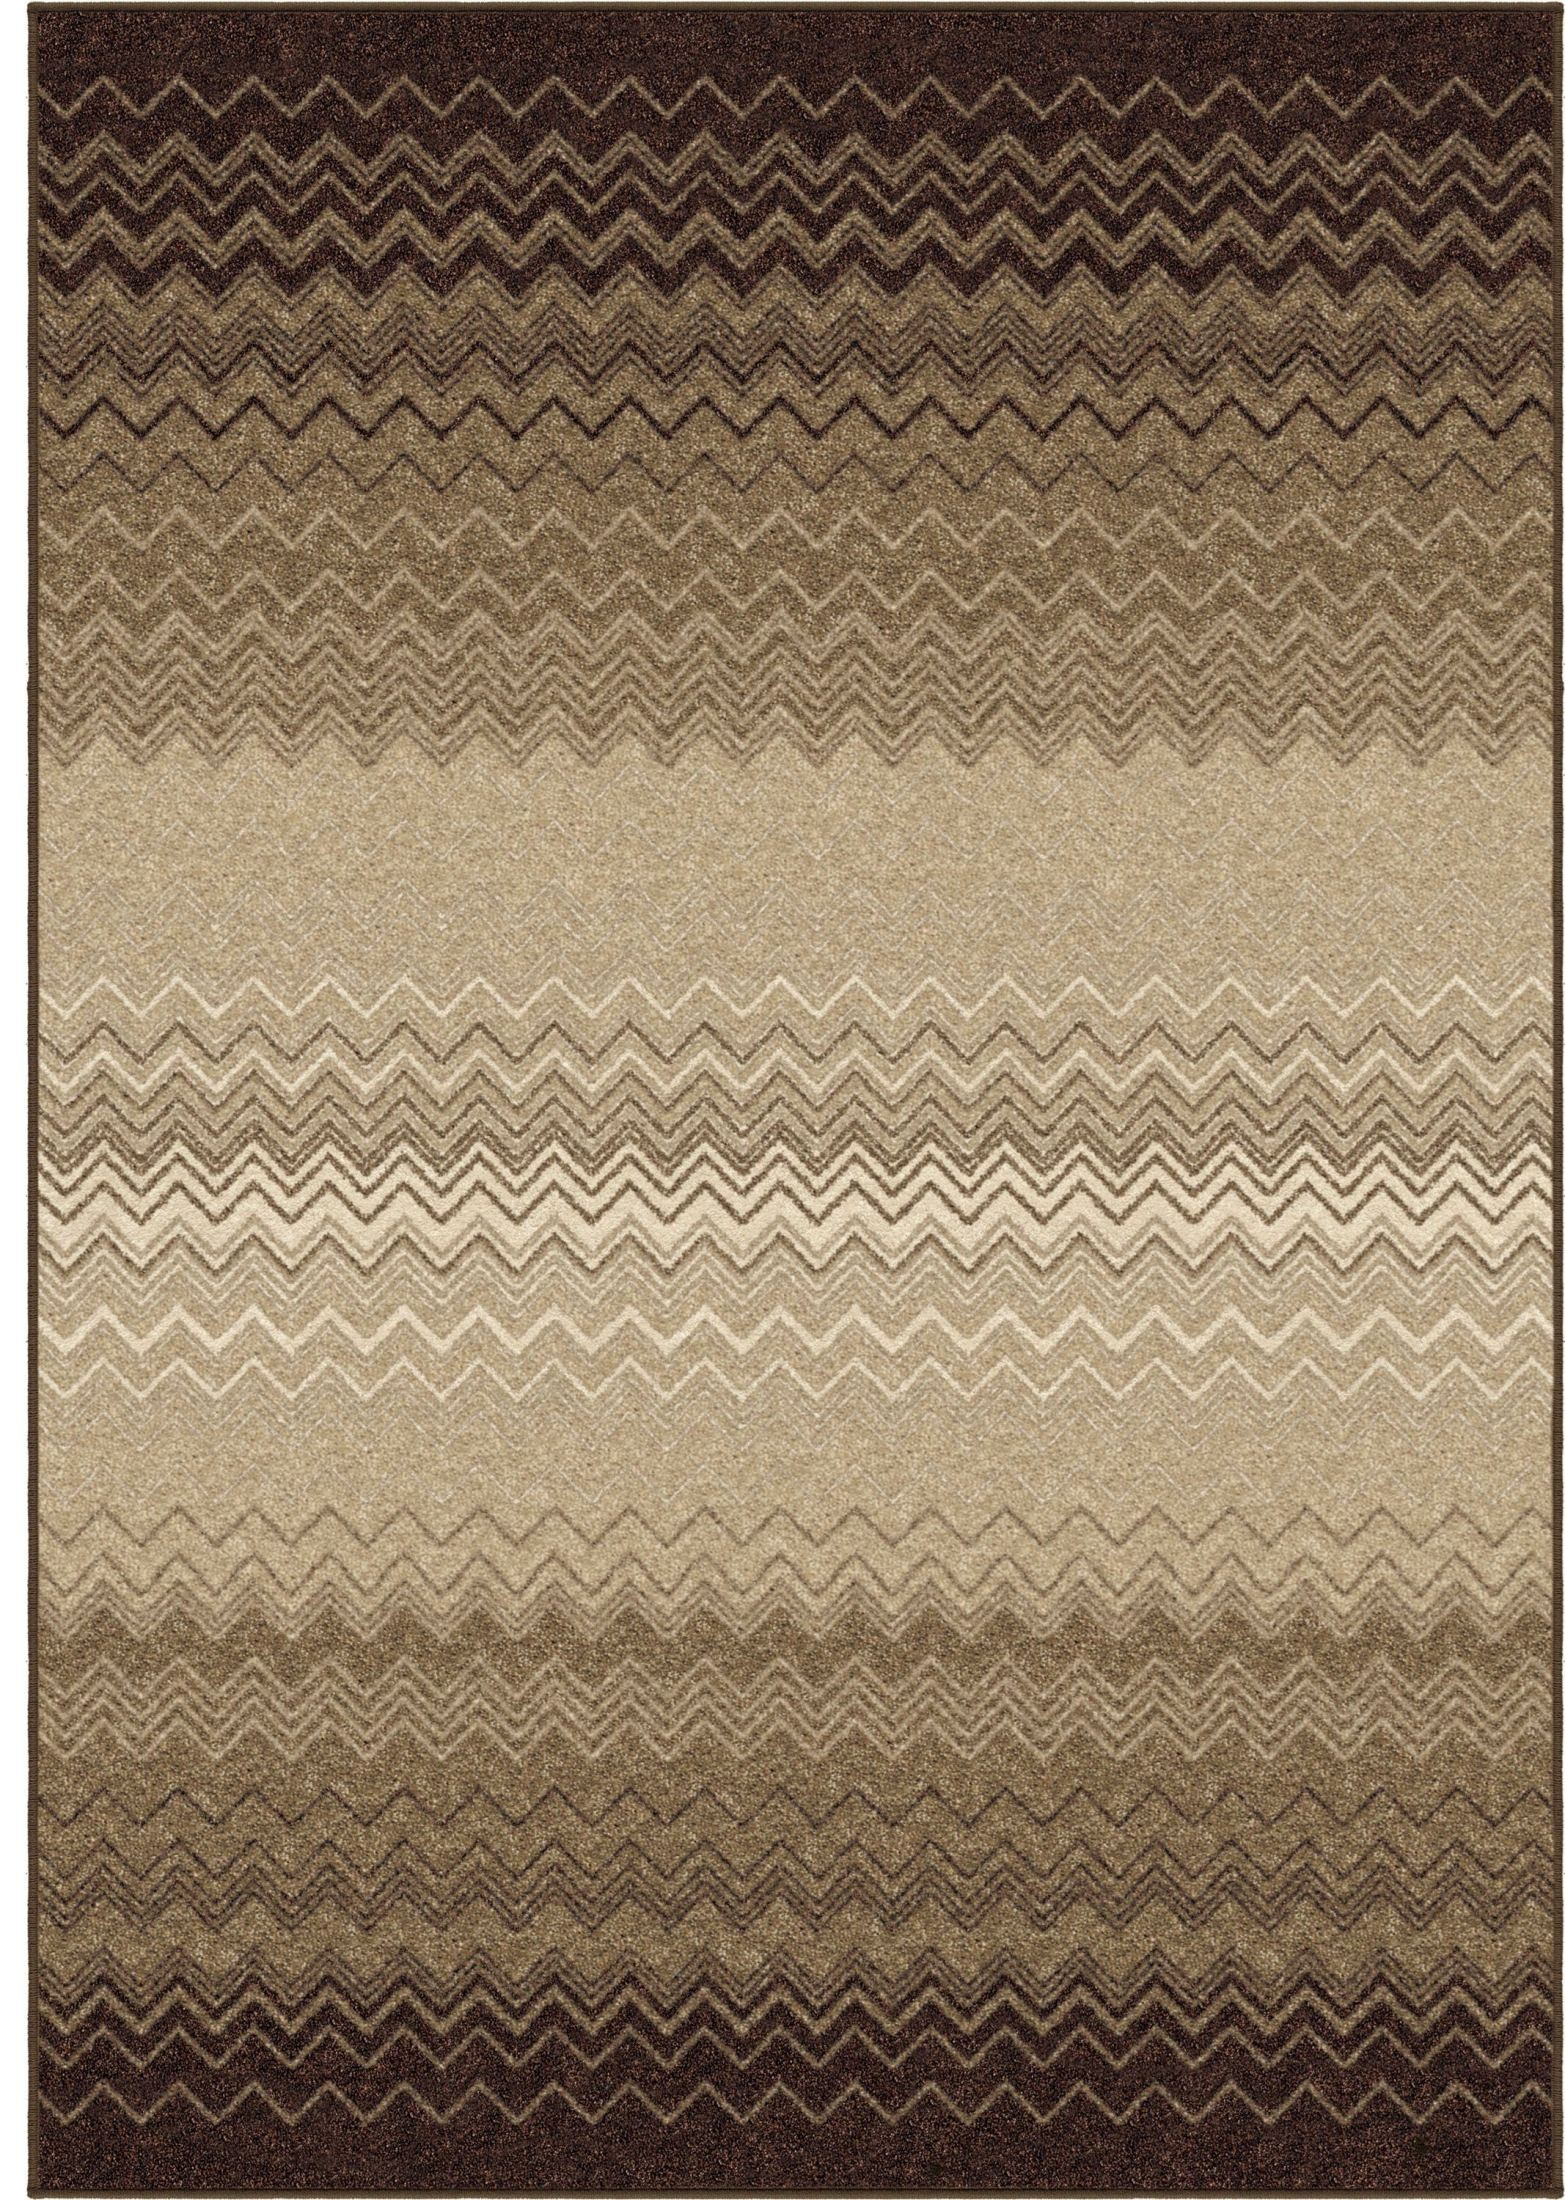 Orian Rugs Trendy Colors Chevron Zig Zag Chevron Taupe